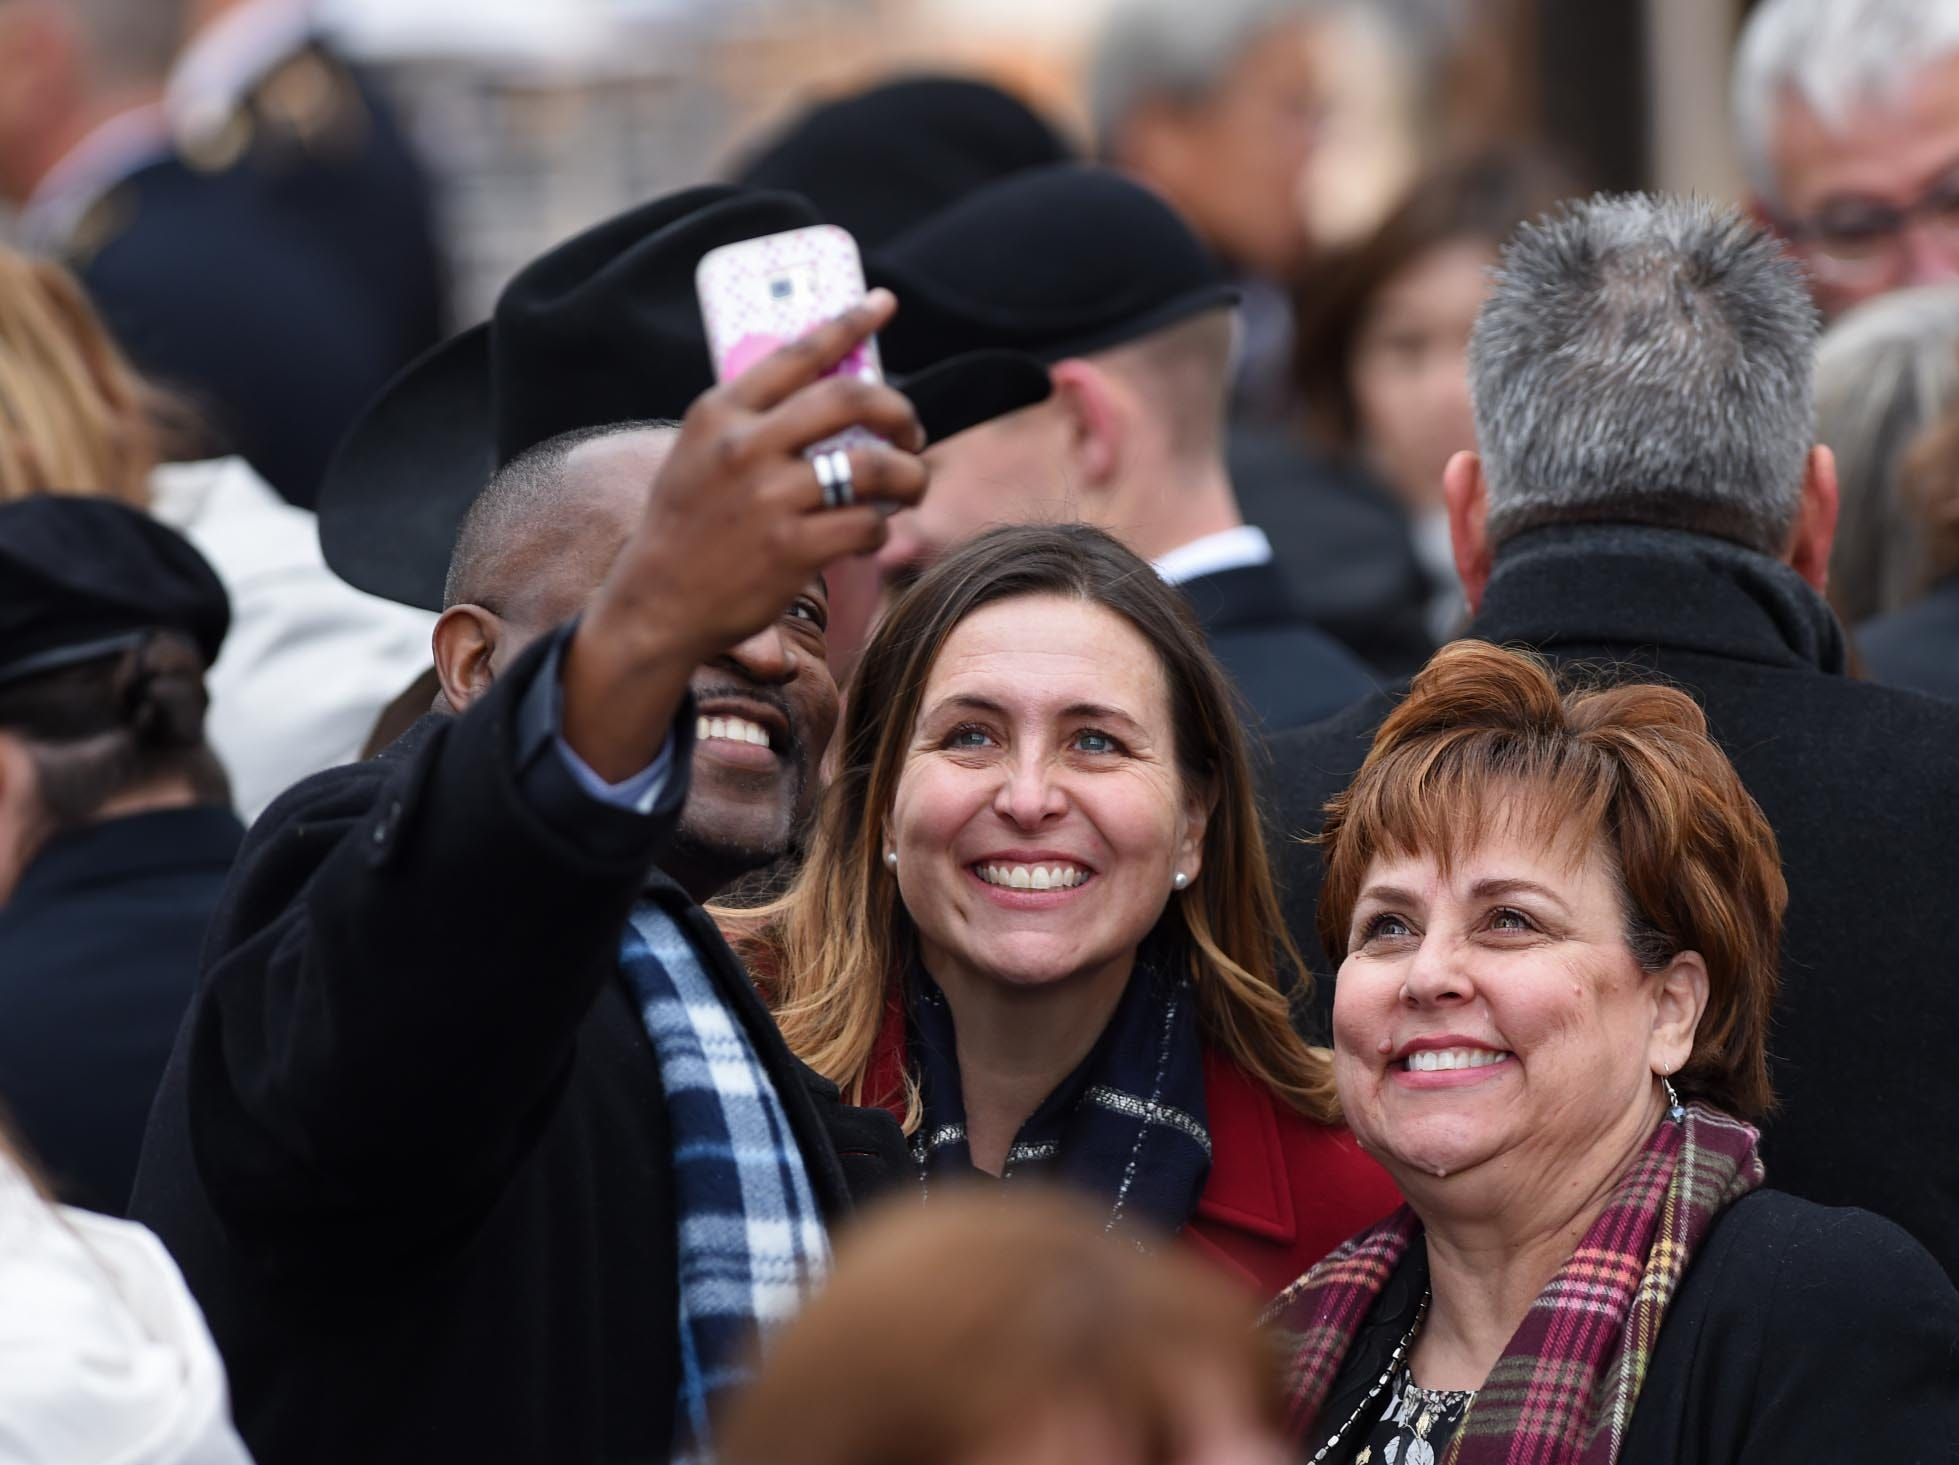 Images of faces at Steve Sisolak's inauguration at the Nevada State Capitol in Carson City, Nevada on Monday Jan. 7, 2018.